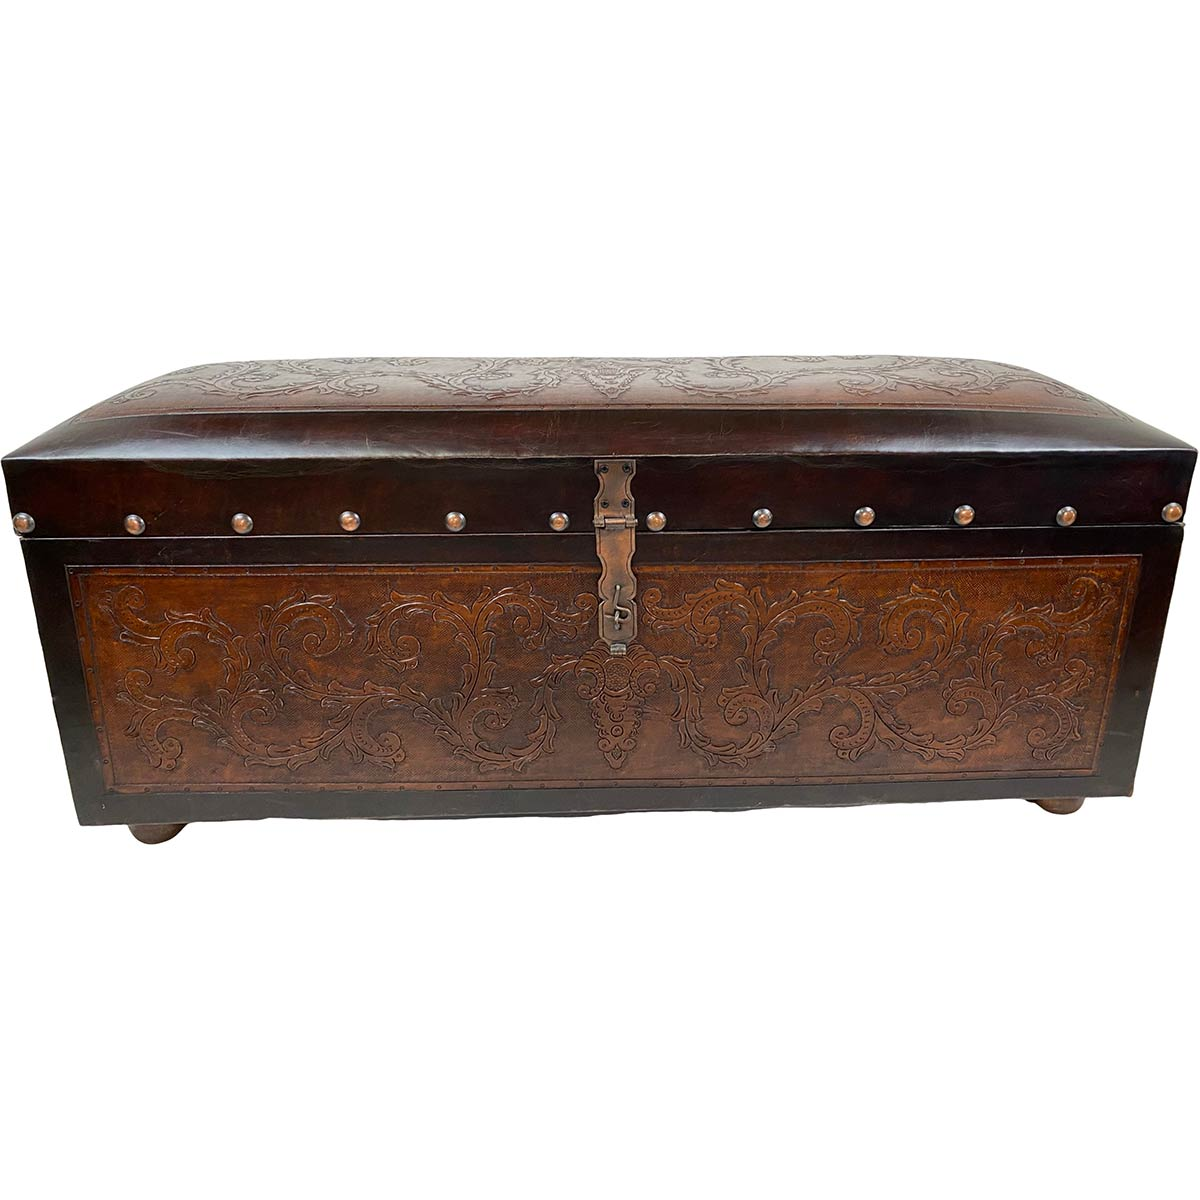 Jumbo Trunk Bench - Colonial